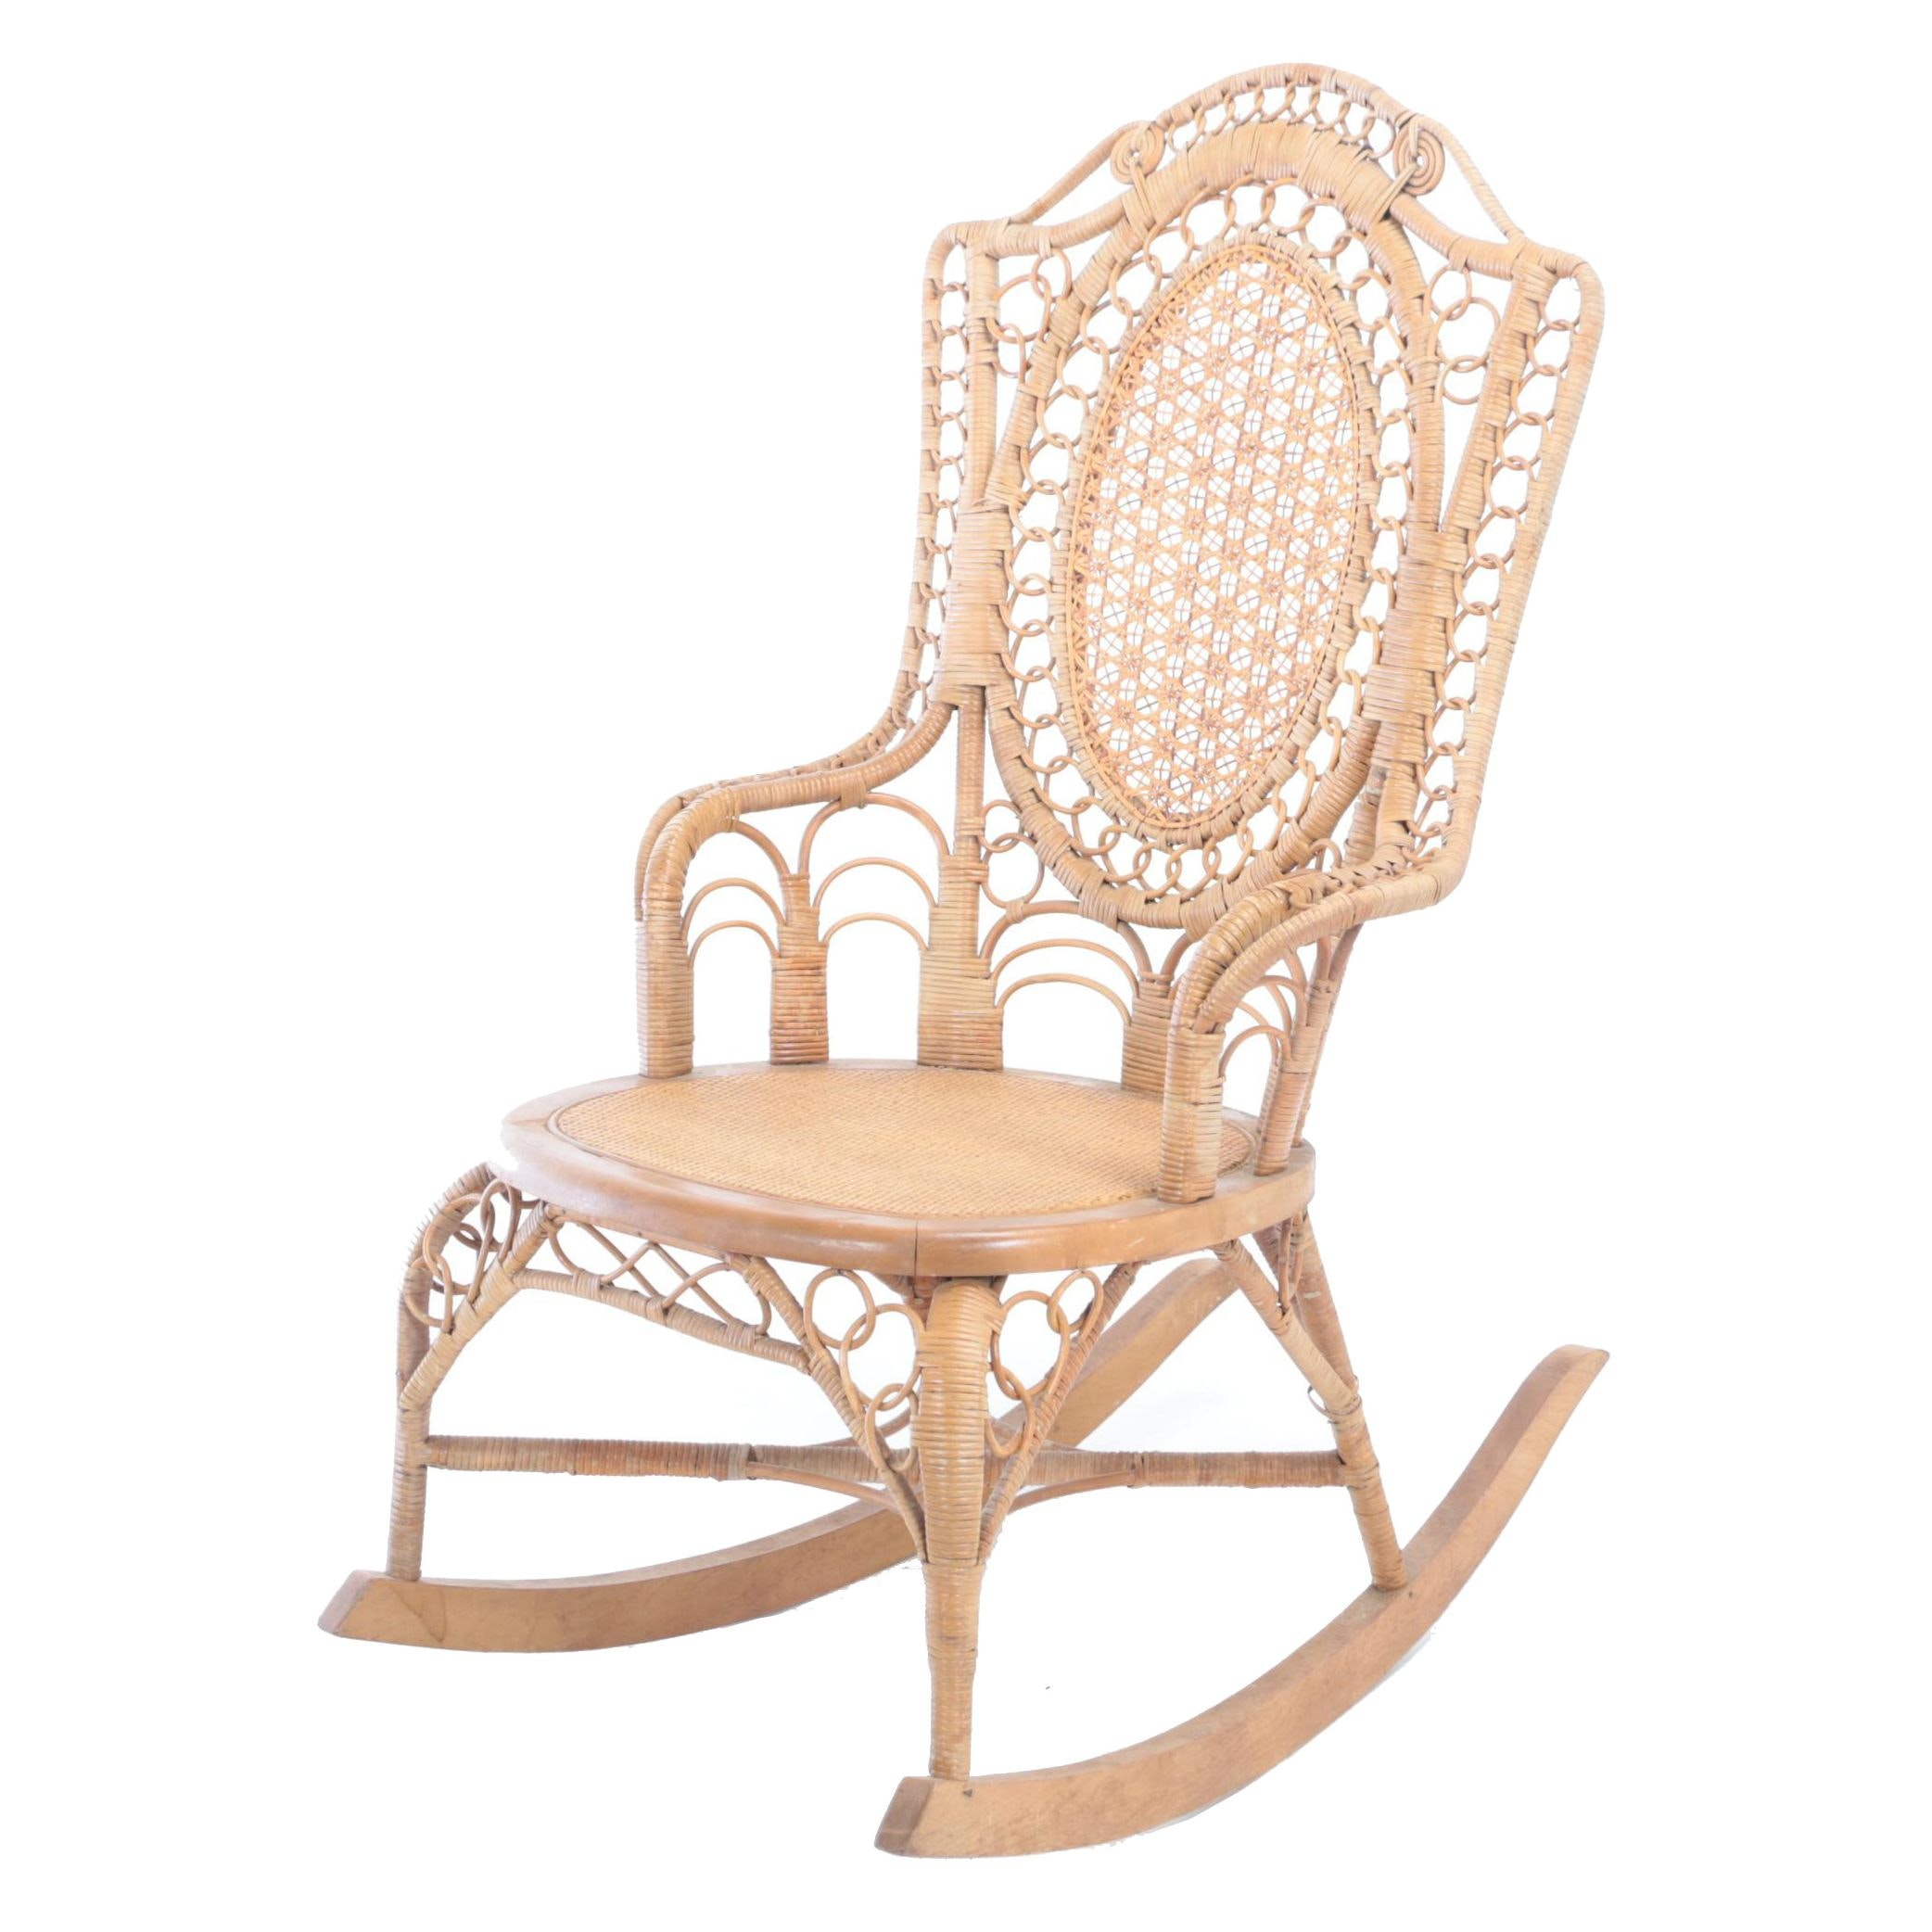 Late Victorian Natural Wicker Rocking Armchair, Late 19th/Early 20th Century